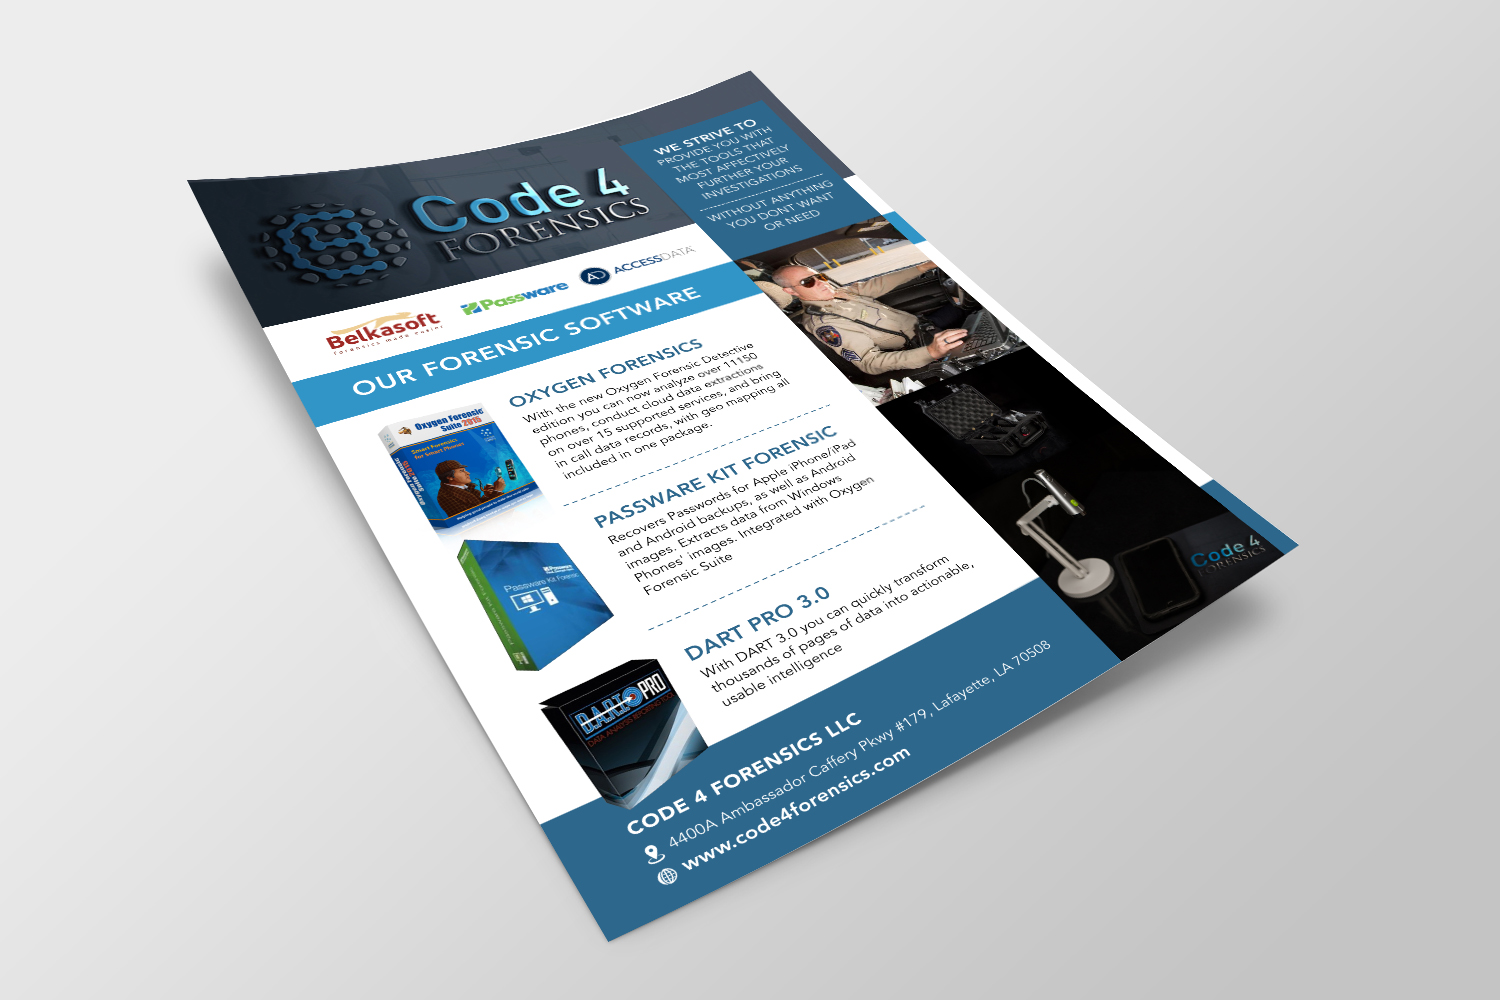 Elegant, Playful, It Company Flyer Design for Code 4